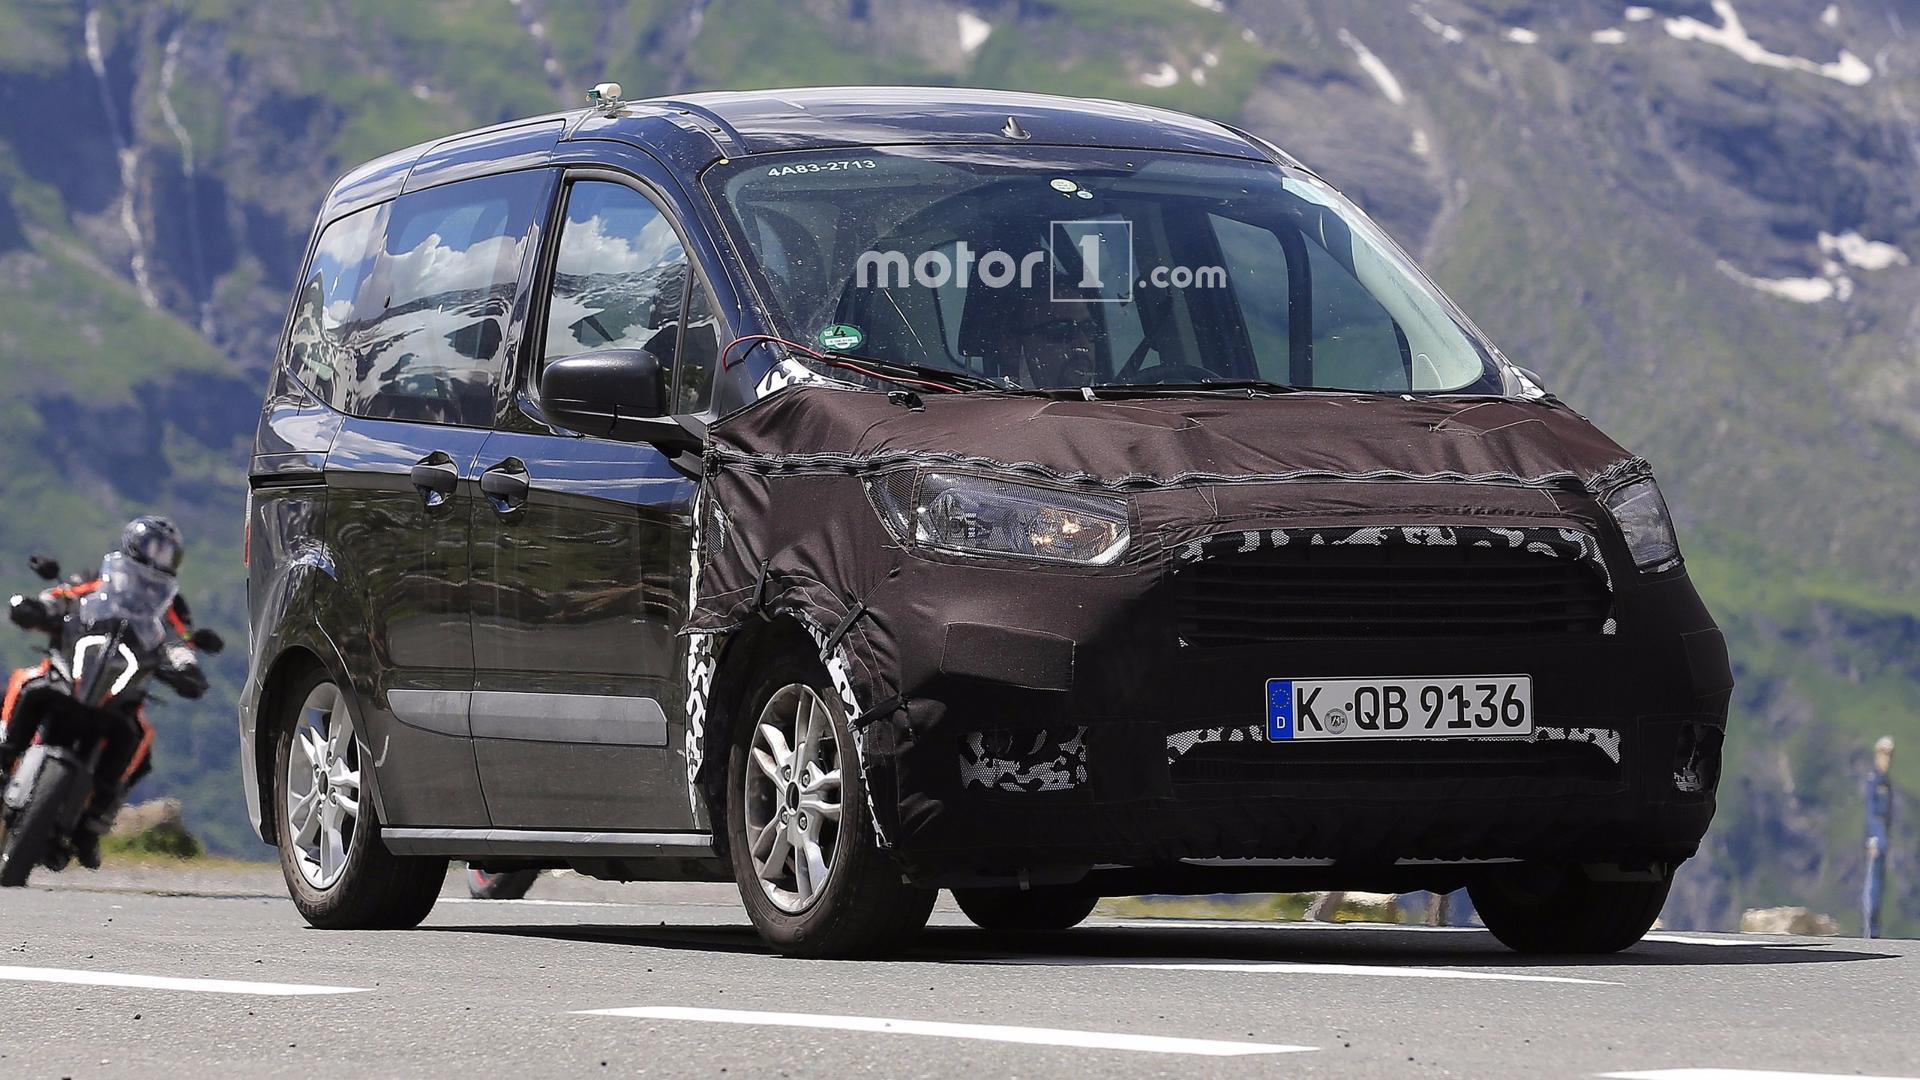 Ford Tourneo Courier Facelift Spied With Even More Camo on ford expedition, ford torino, ford f-250, ford ecosport, ford cougar, ford taurus, ford f350, ford fiesta, ford fusion, ford courier, ford focus, ford e-series, ford connect, ford granada, ford caravan red, ford mondeo, ford explorer, ford transit, ford tempo, ford flex,